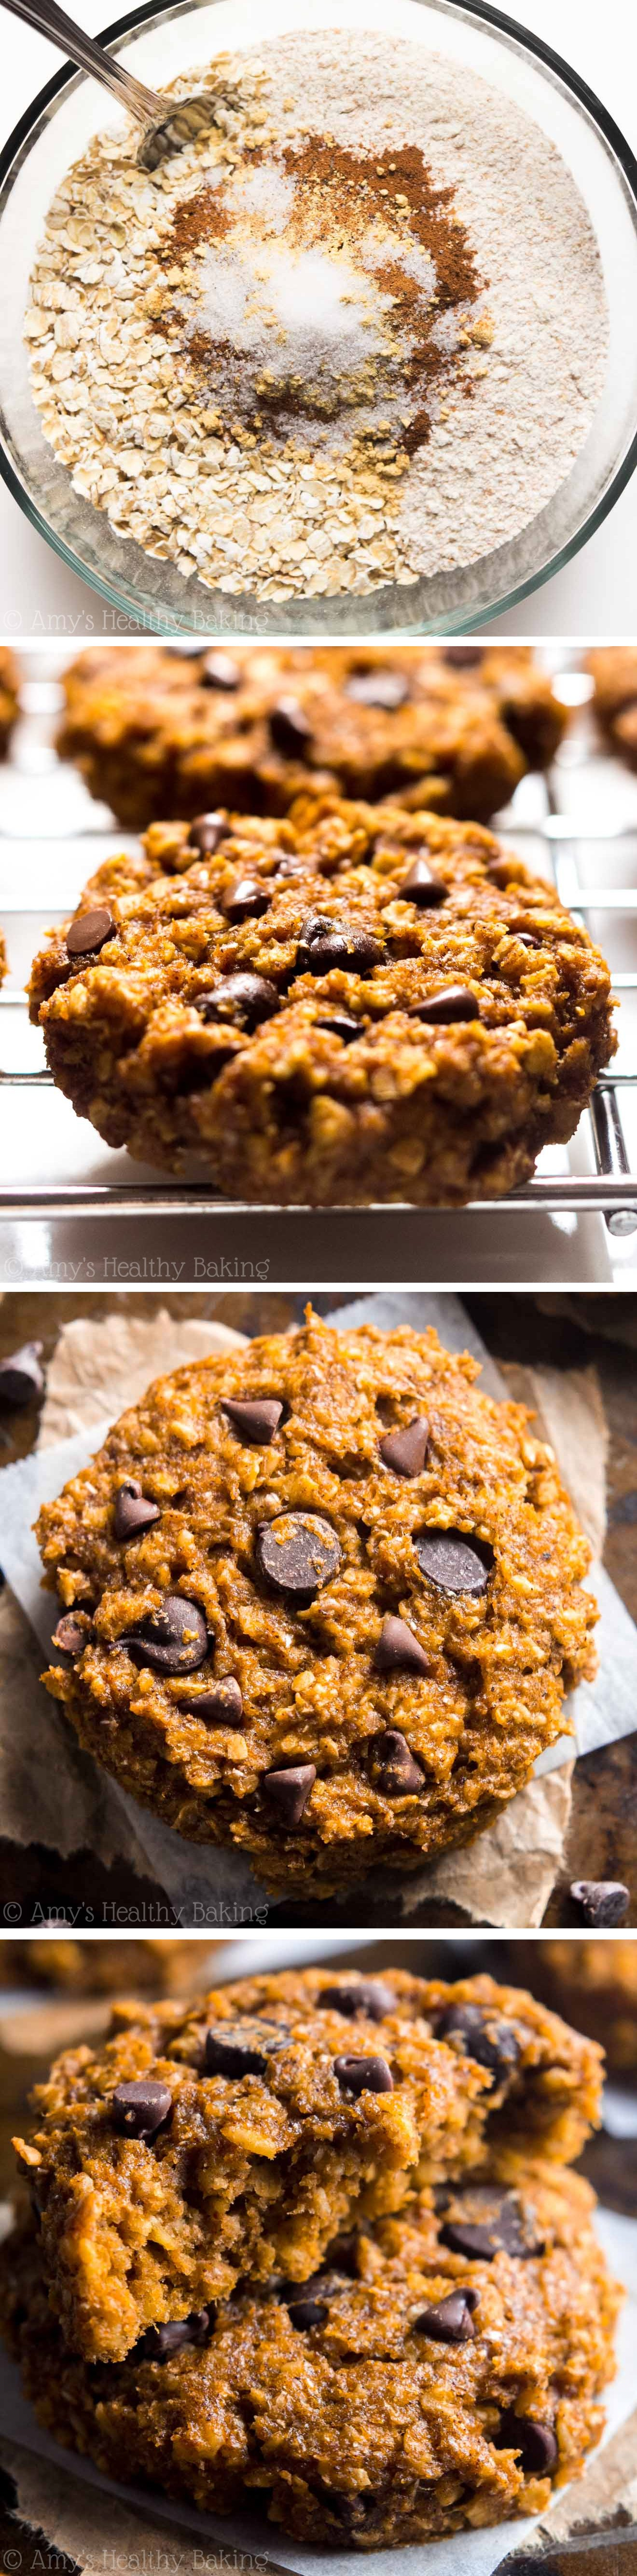 Pumpkin Pie Chocolate Chip Oatmeal Cookies | Amy's ...